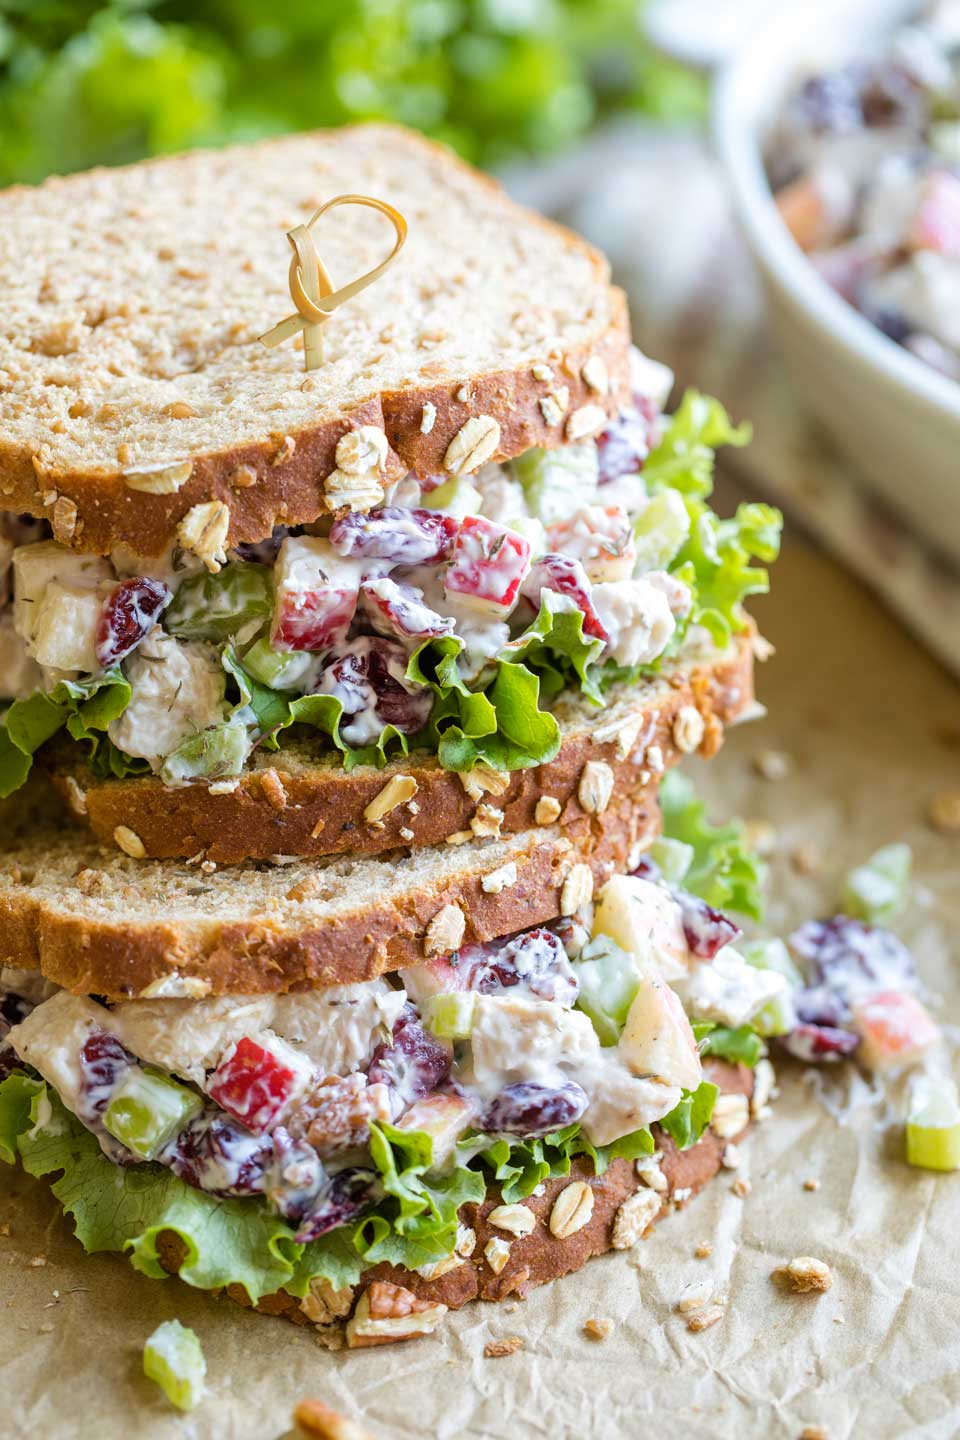 Two finished sandwiches, stacked on top of each other on parchment, with the bowl of extra turkey salad in the background.